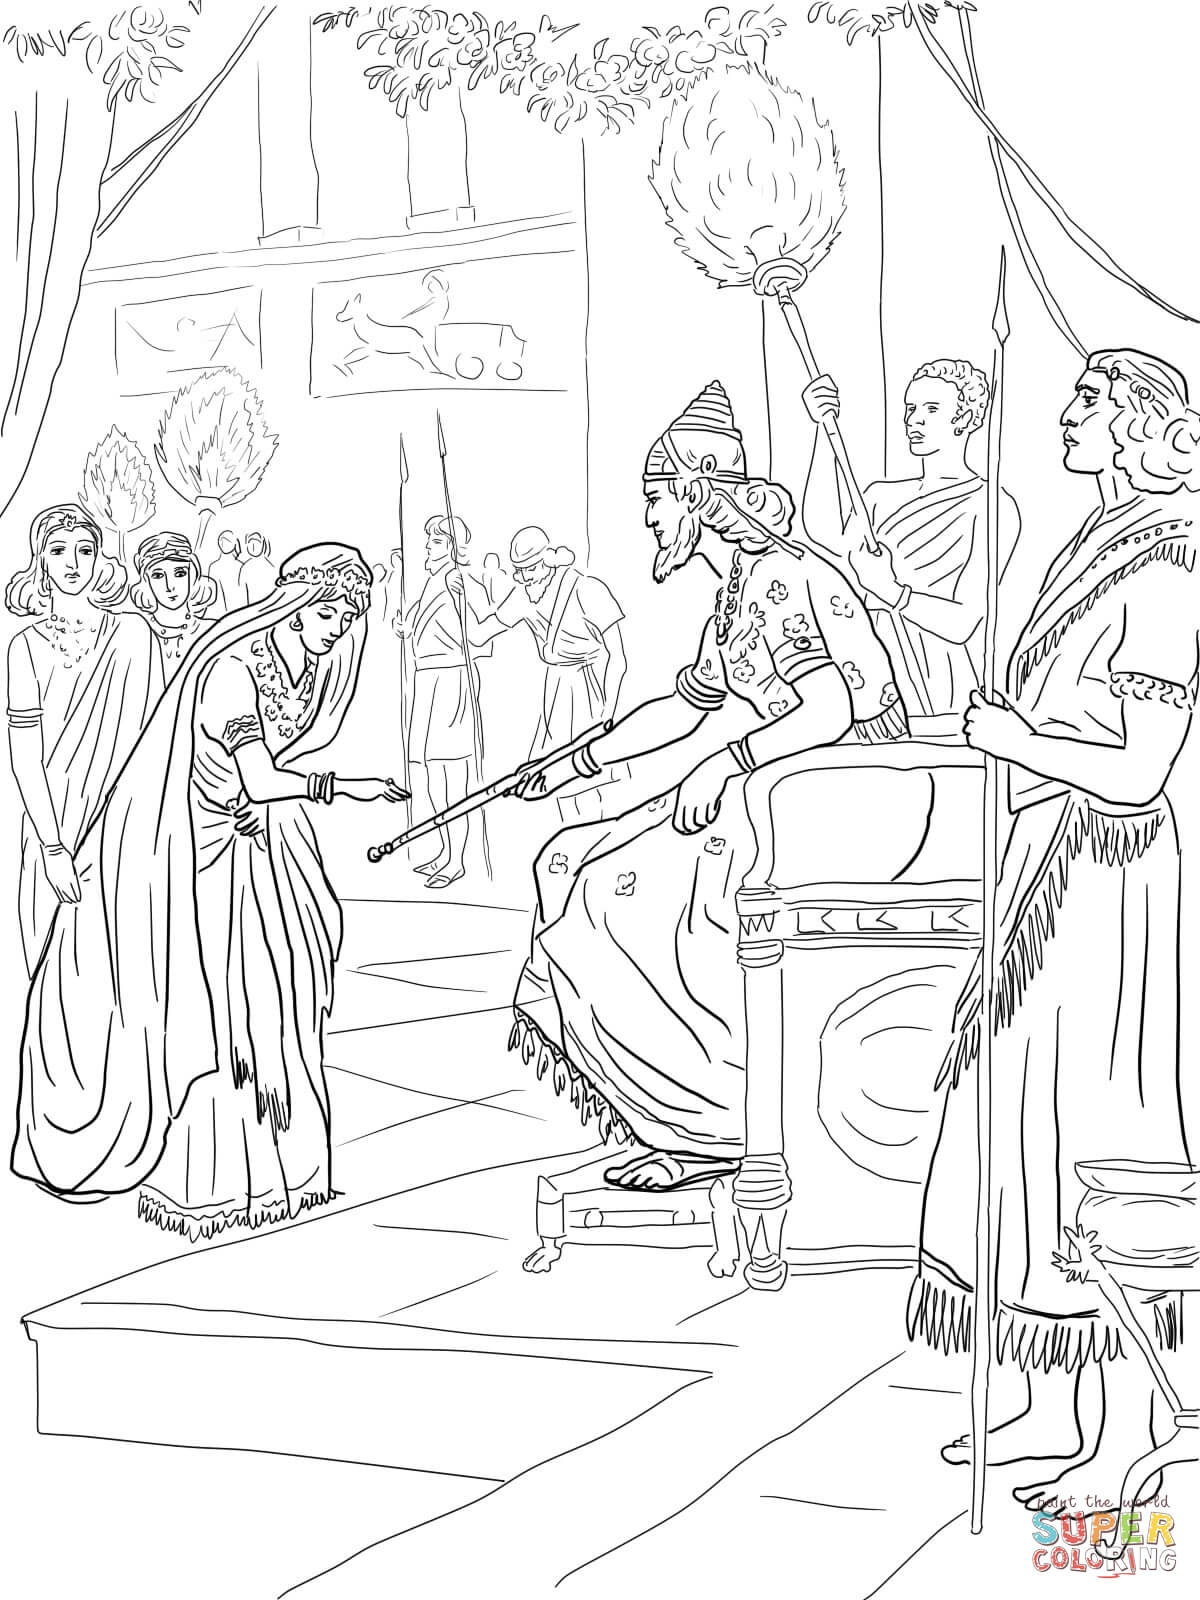 24 Shadrach Meshach and Abednego Coloring Page Pictures | FREE ...